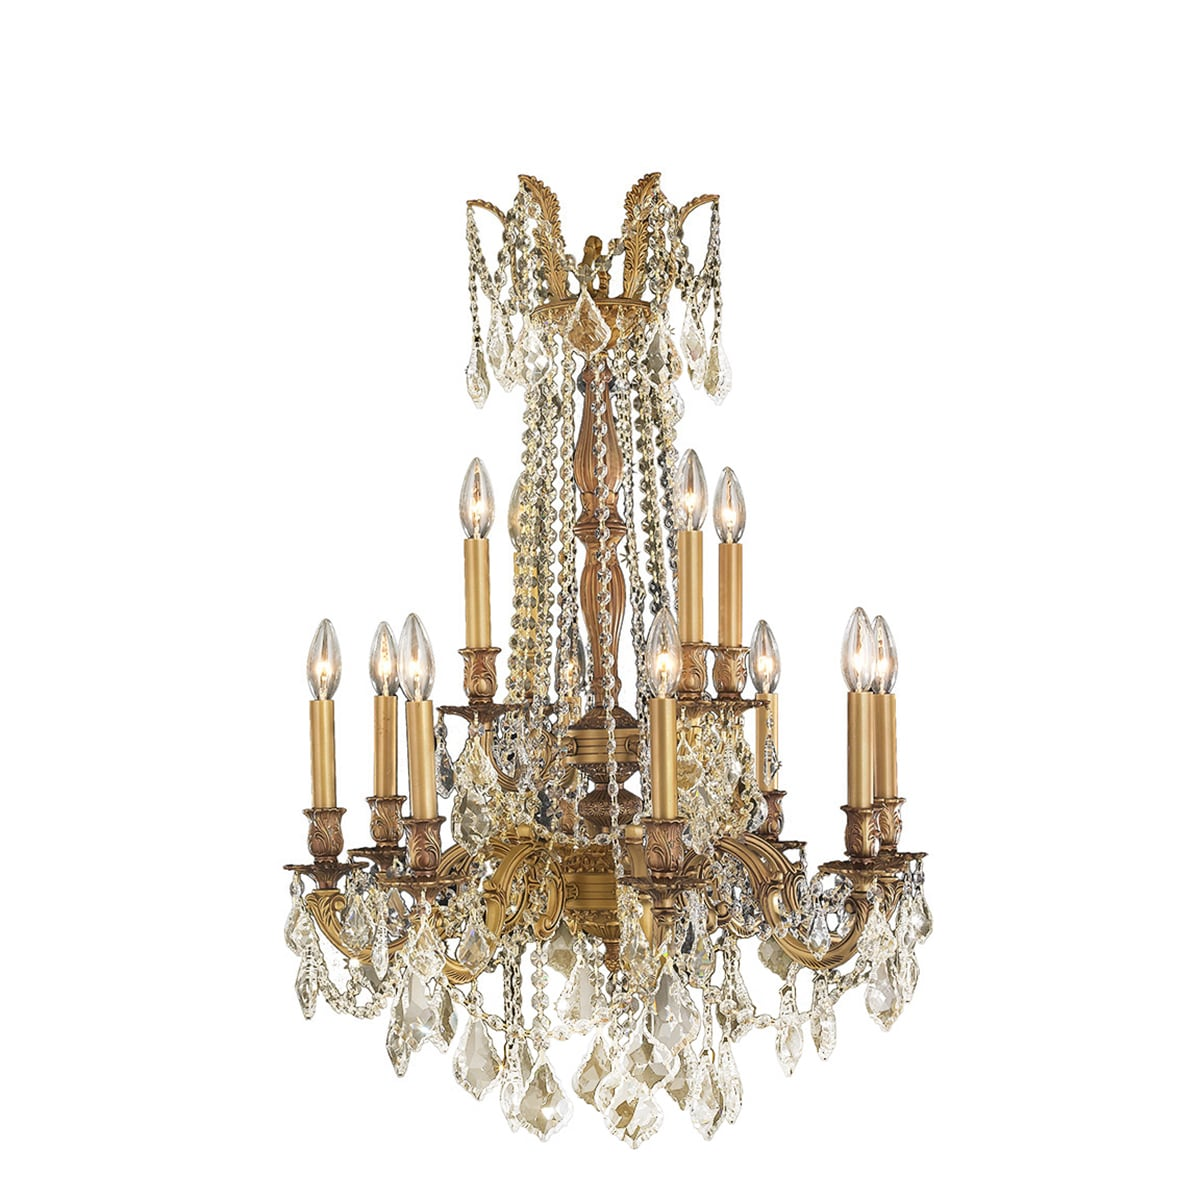 Italian elegance collection 12 light french gold finish crystal italian elegance collection 12 light french gold finish crystal ornate chandelier 24 x 36 two 2 tier free shipping today overstock 17654216 arubaitofo Choice Image